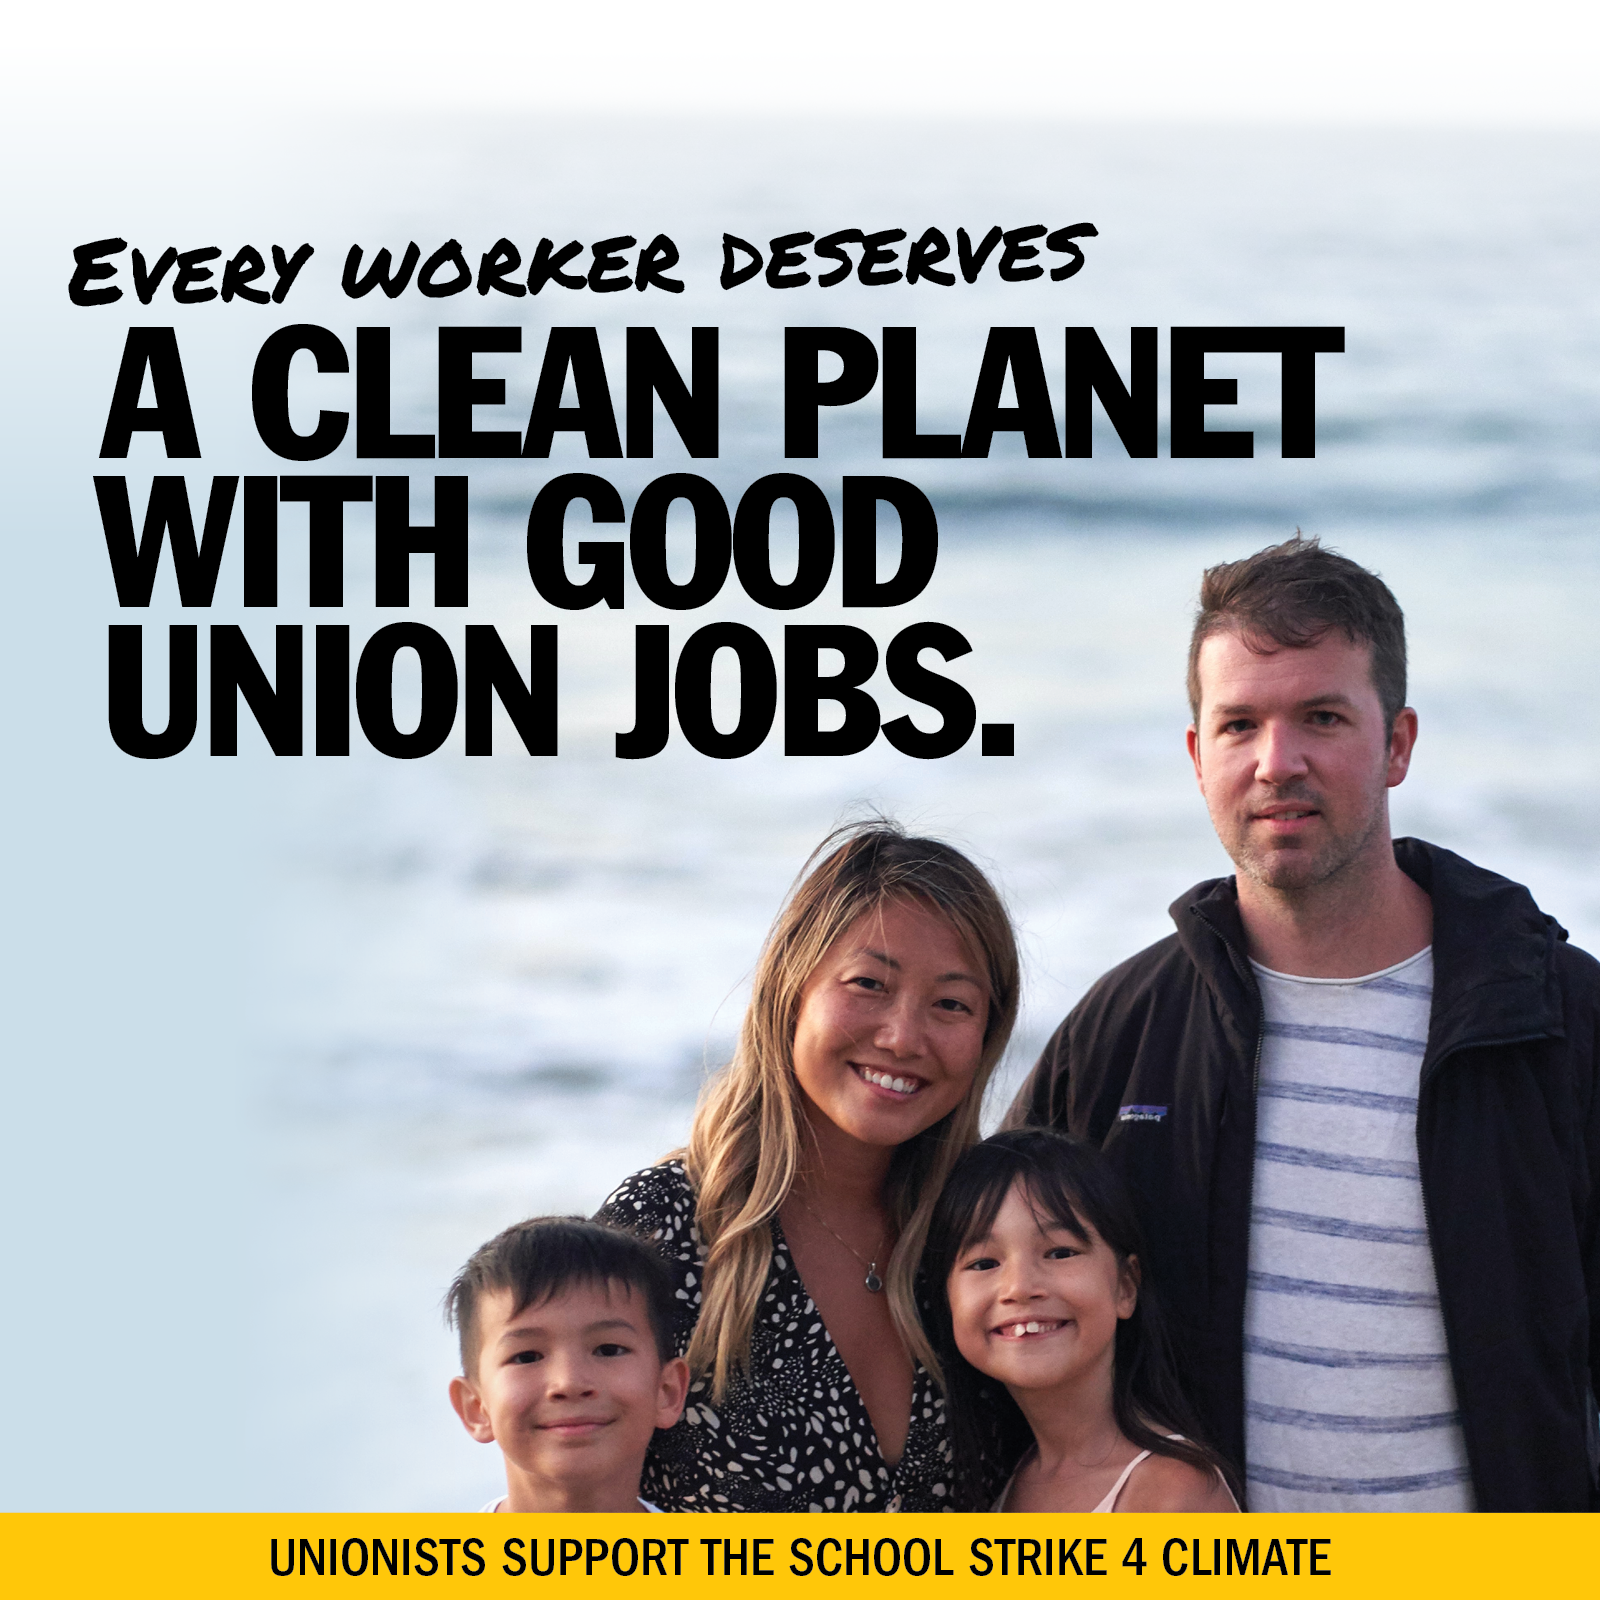 a clean planet with good union jobs